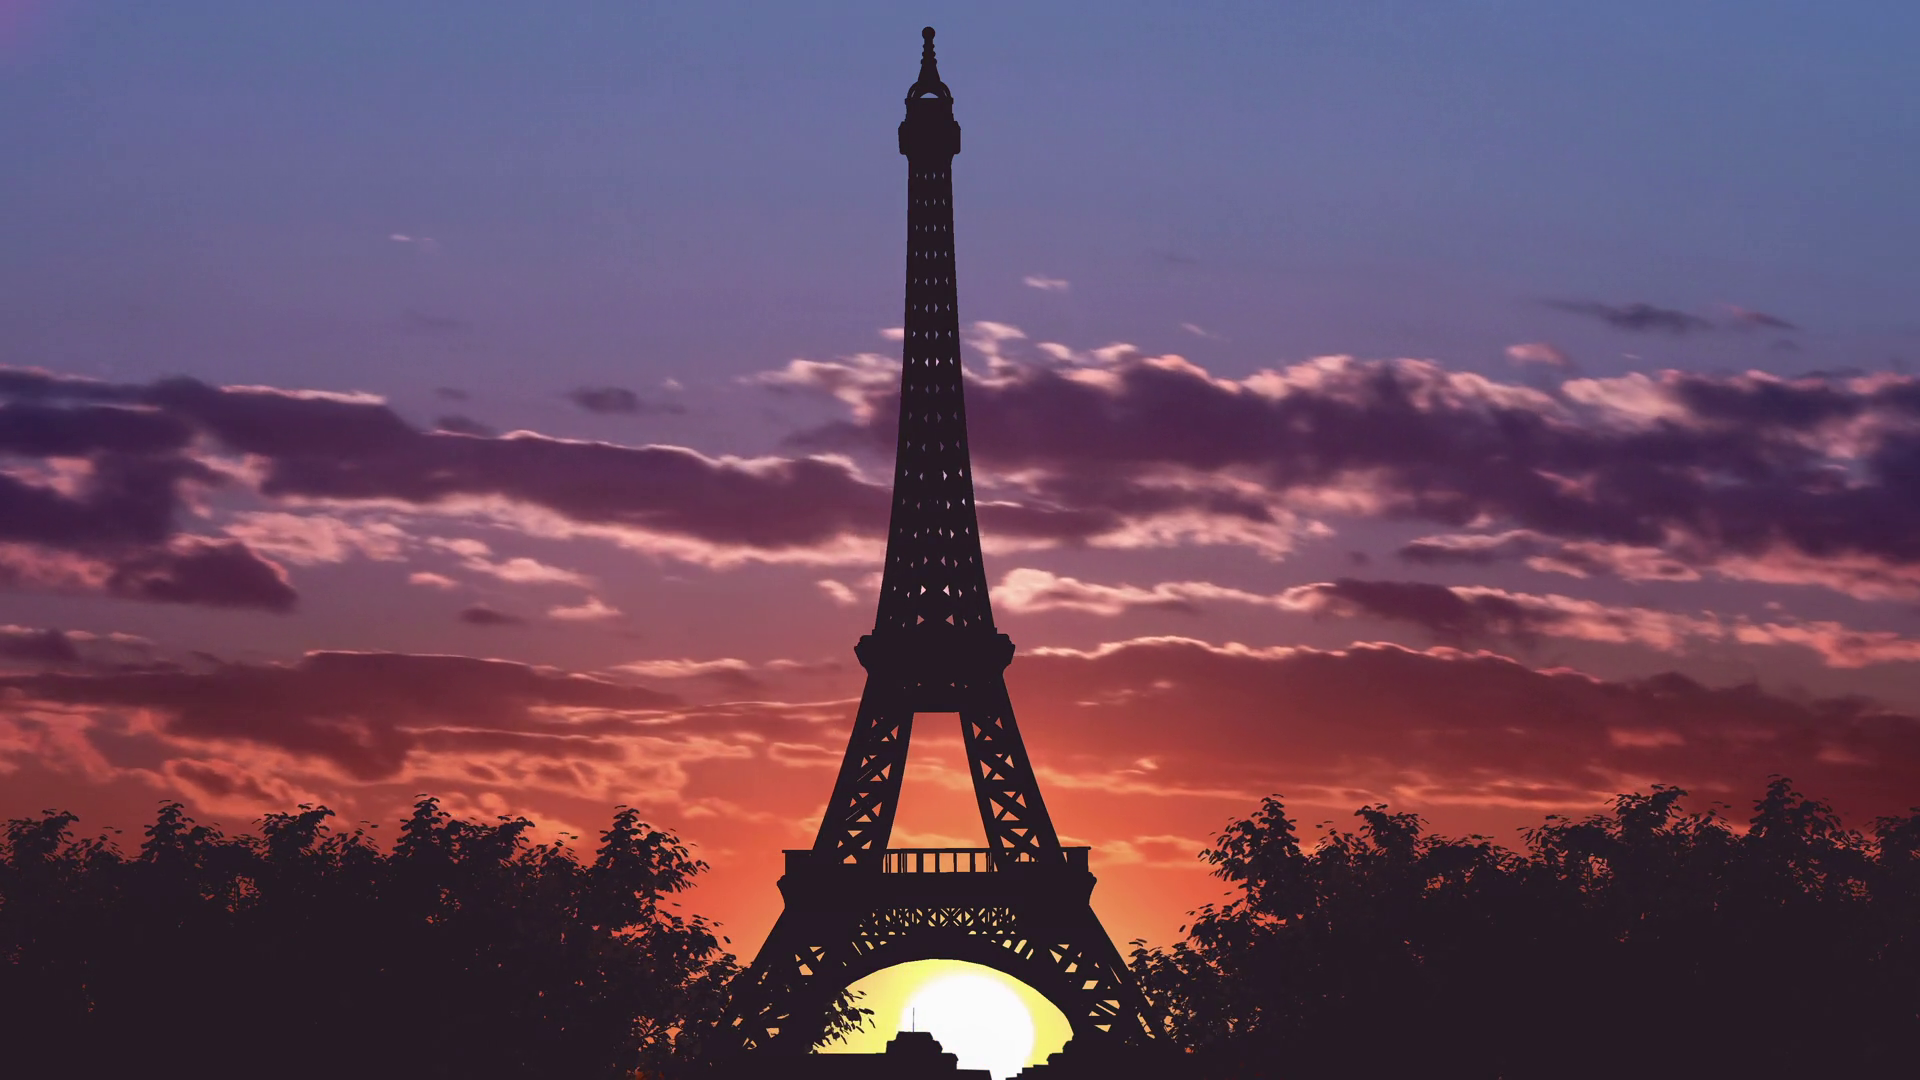 4 In 1 Video The Beautiful View Of The Eiffel Tower Against The Background Of Sunset Time Lapse Wide Angle Motion Background Storyblocks